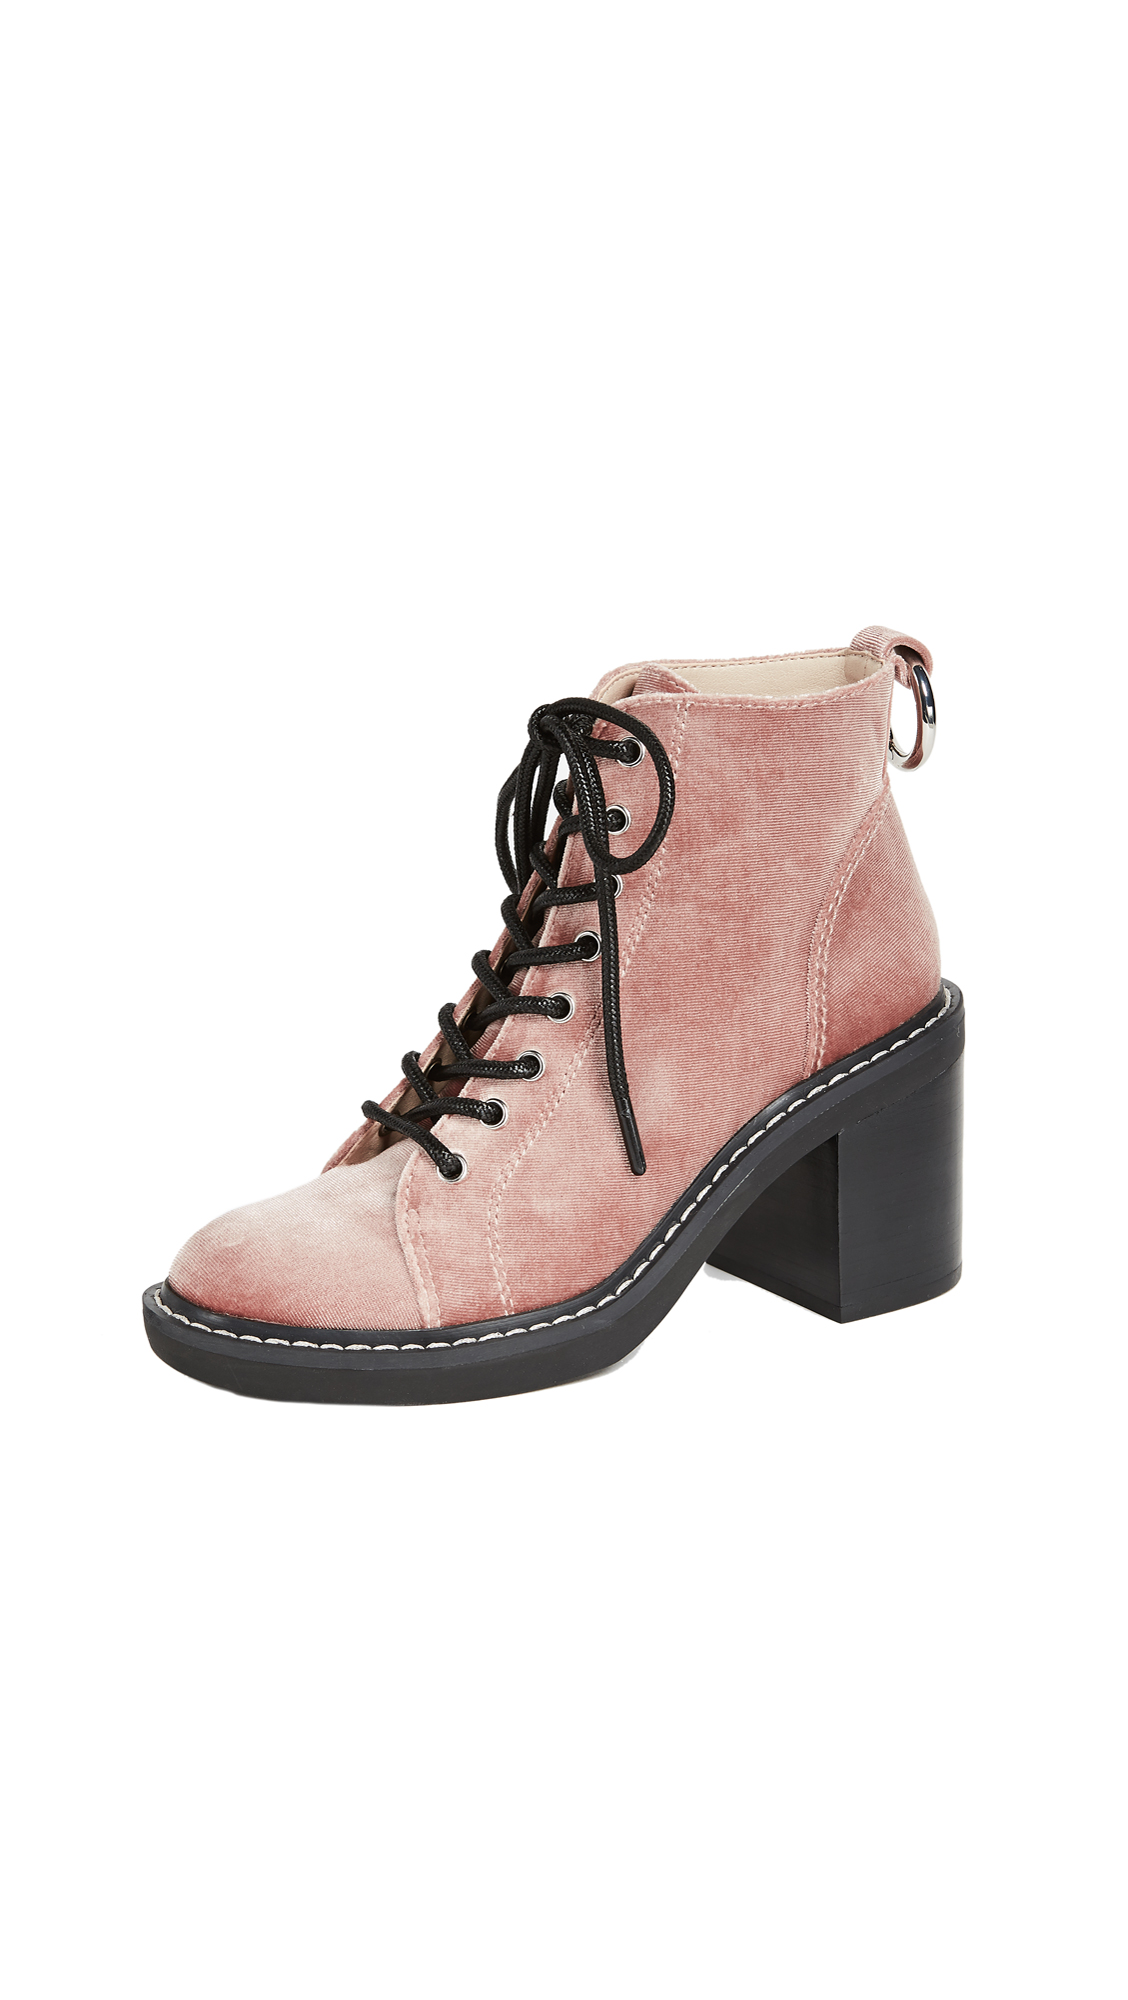 Dolce Vita Lynx Combat Heeled Boots - Rose